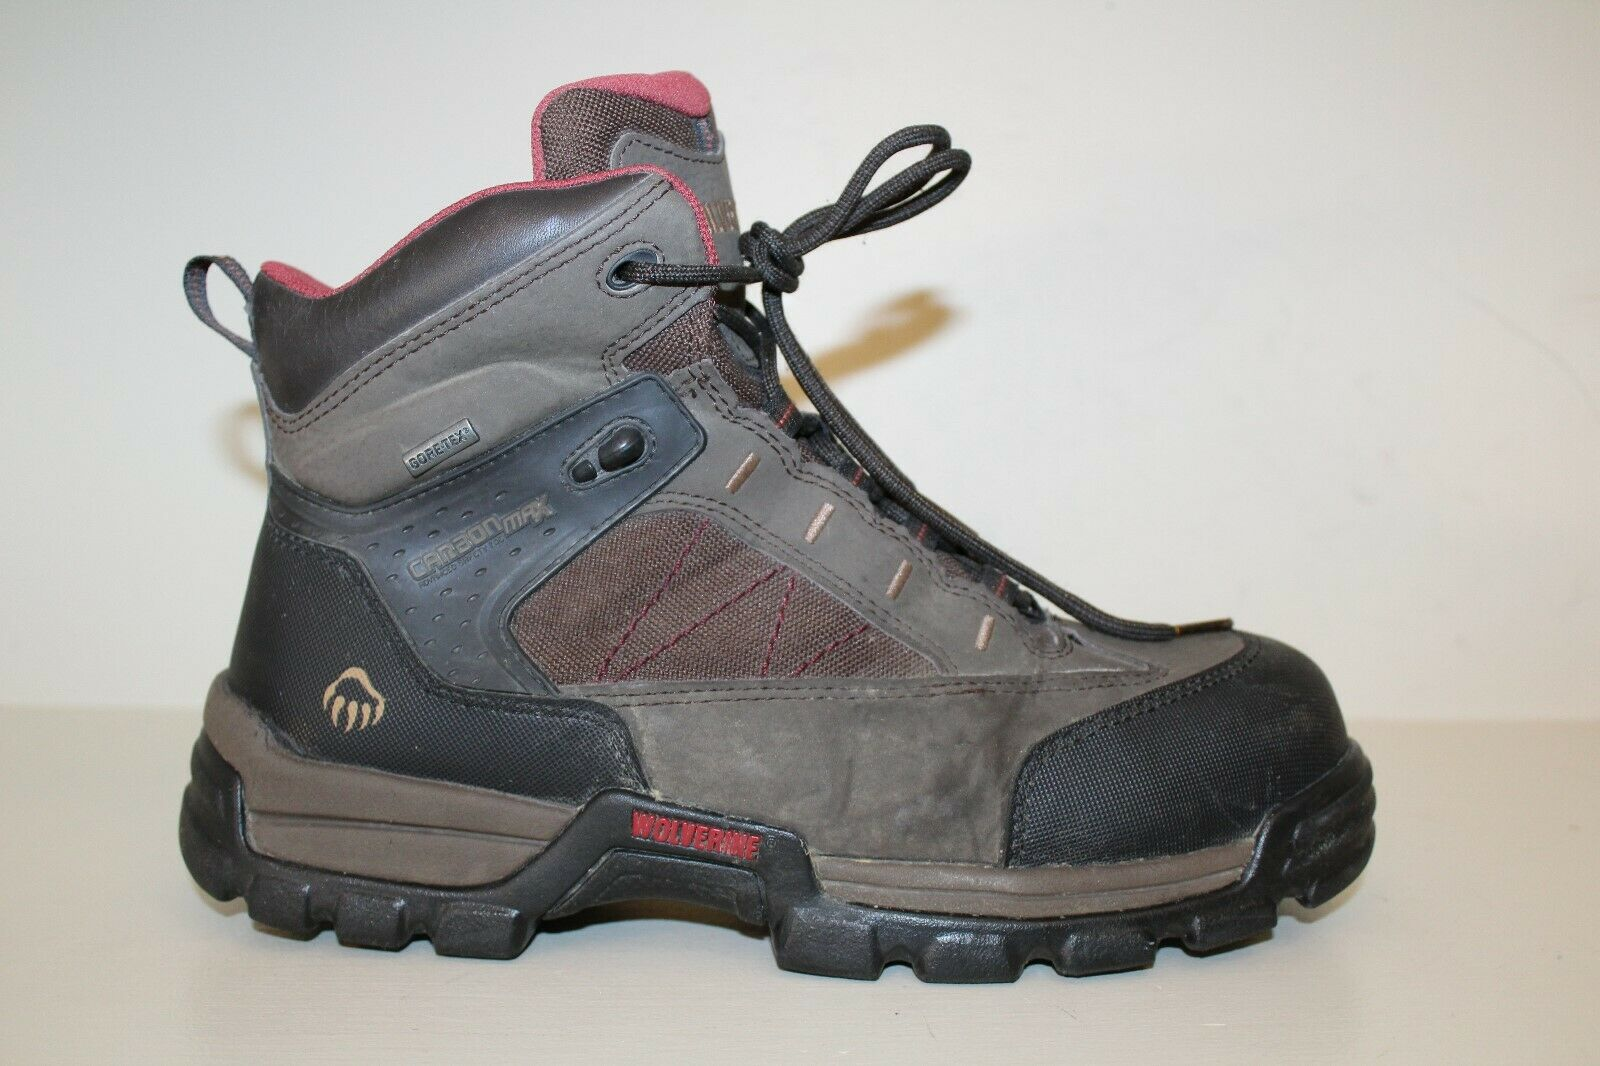 Wolverine Mens Work Boots Size 8.5 EW Carbon Max Advanced Safety Toe Gore-Tex EH